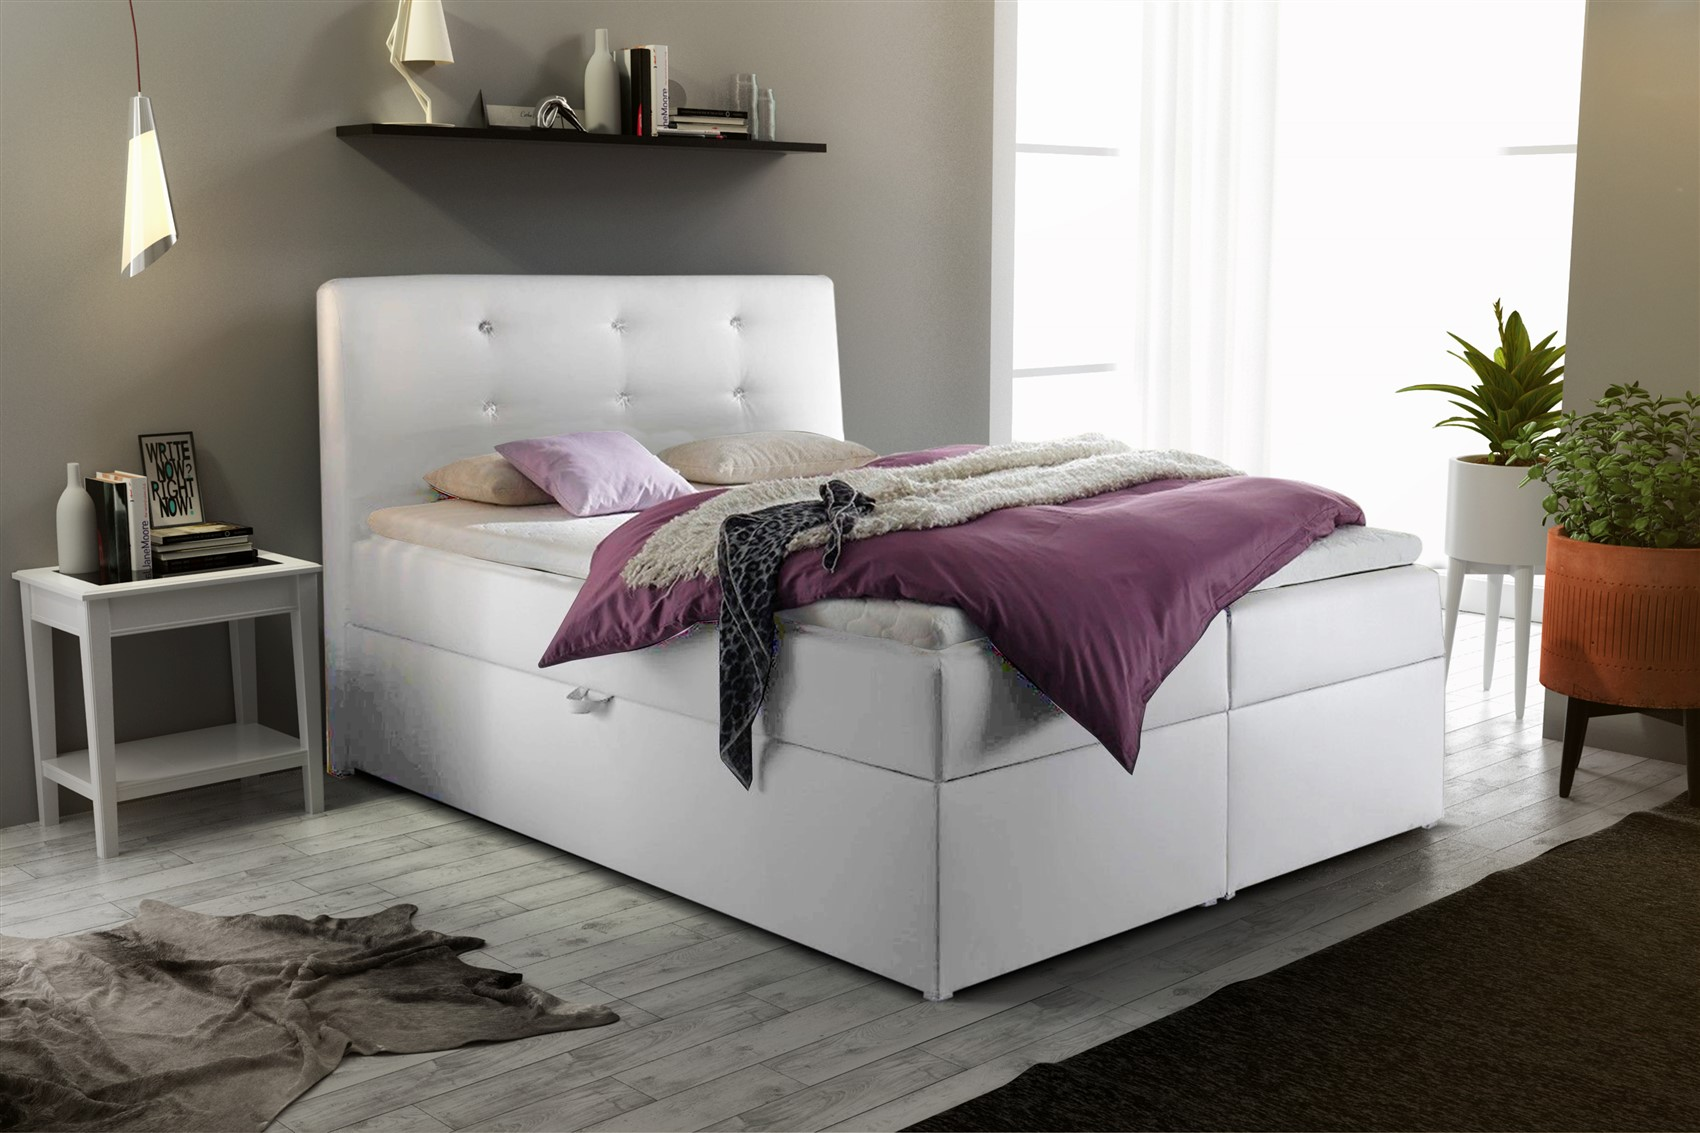 boxspringbett schlafzimmerbett monza kunstleder weiss. Black Bedroom Furniture Sets. Home Design Ideas